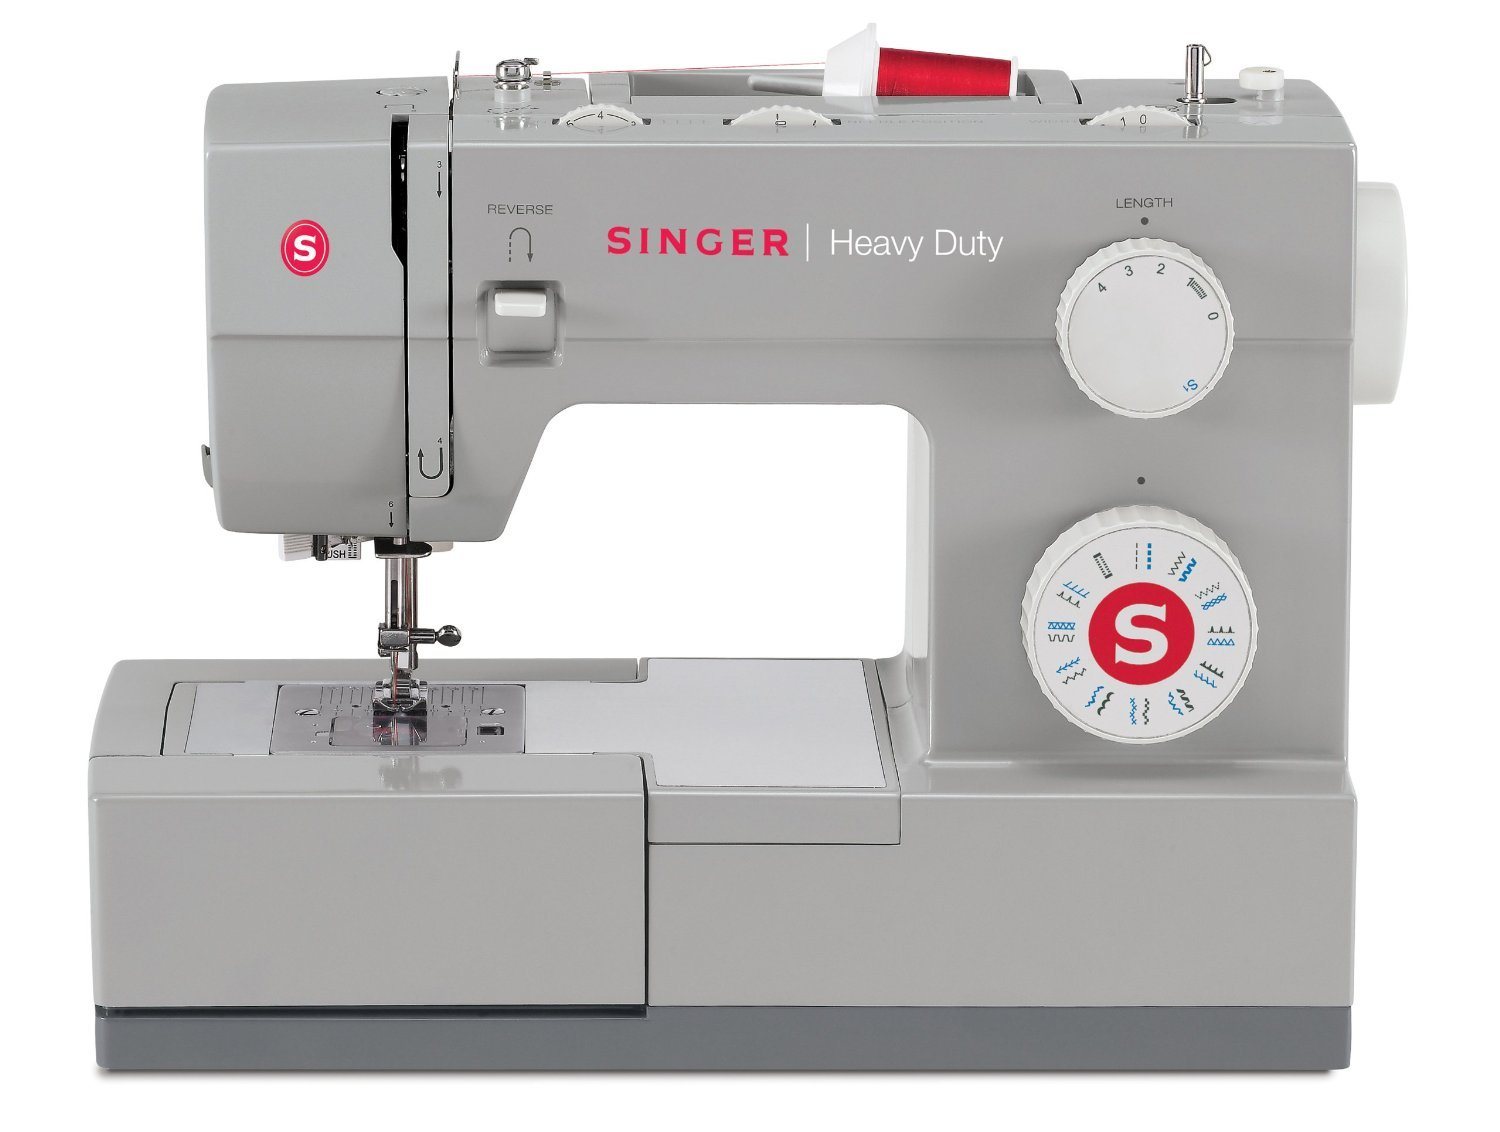 Top 9 Best Singer Sewing Machine Reviews in 2019 12